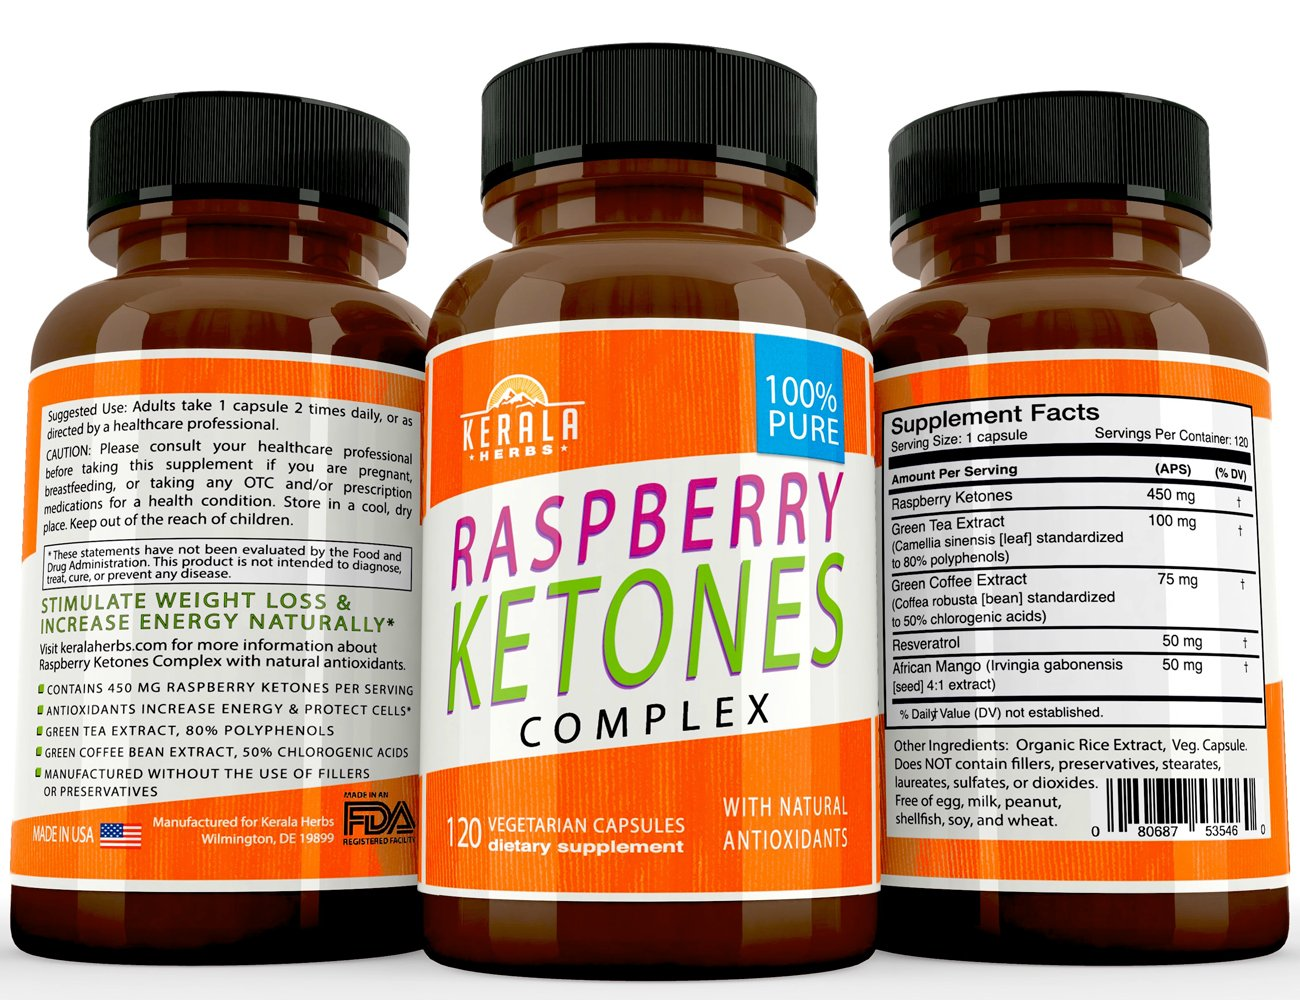 Kerala Herbs Raspberry Ketones Complex for Natural Weight Loss and Boost Energy Easy Swallow Pill, Advanced Antioxidants, Green Tea Extract, Green Coffee Extract for Appetite Suppression 120 capsules by Kerala Herbs